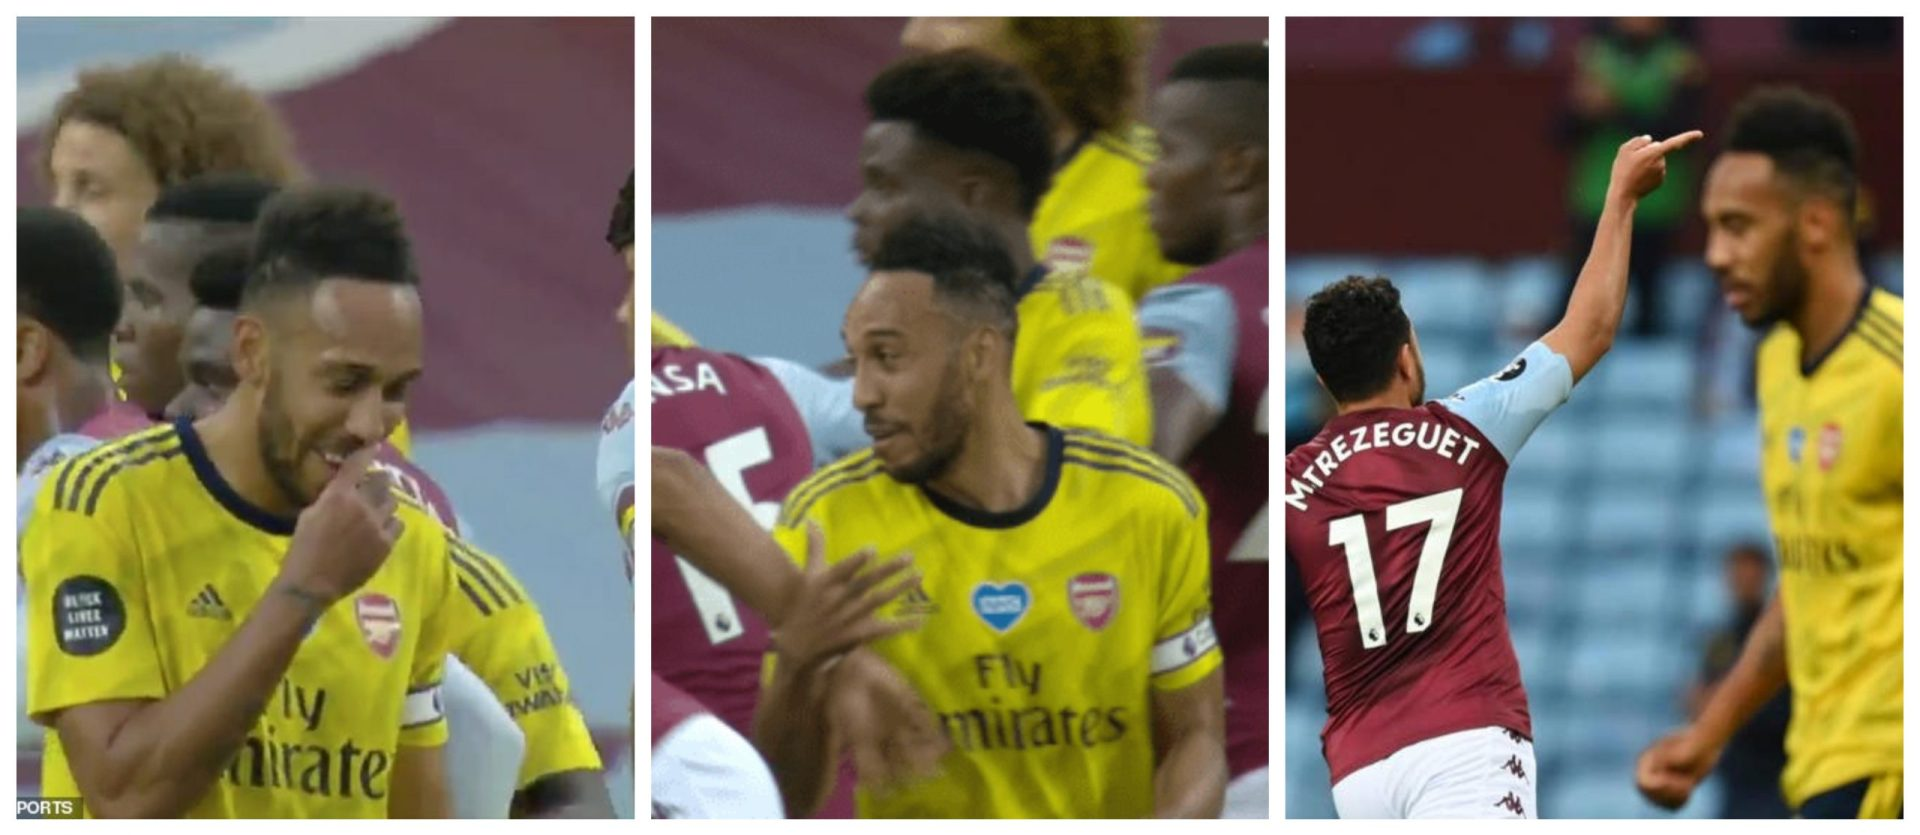 Smile that kills: Aubameyang seen laughing with Mings before conceding goal - THE SPORTS ROOM